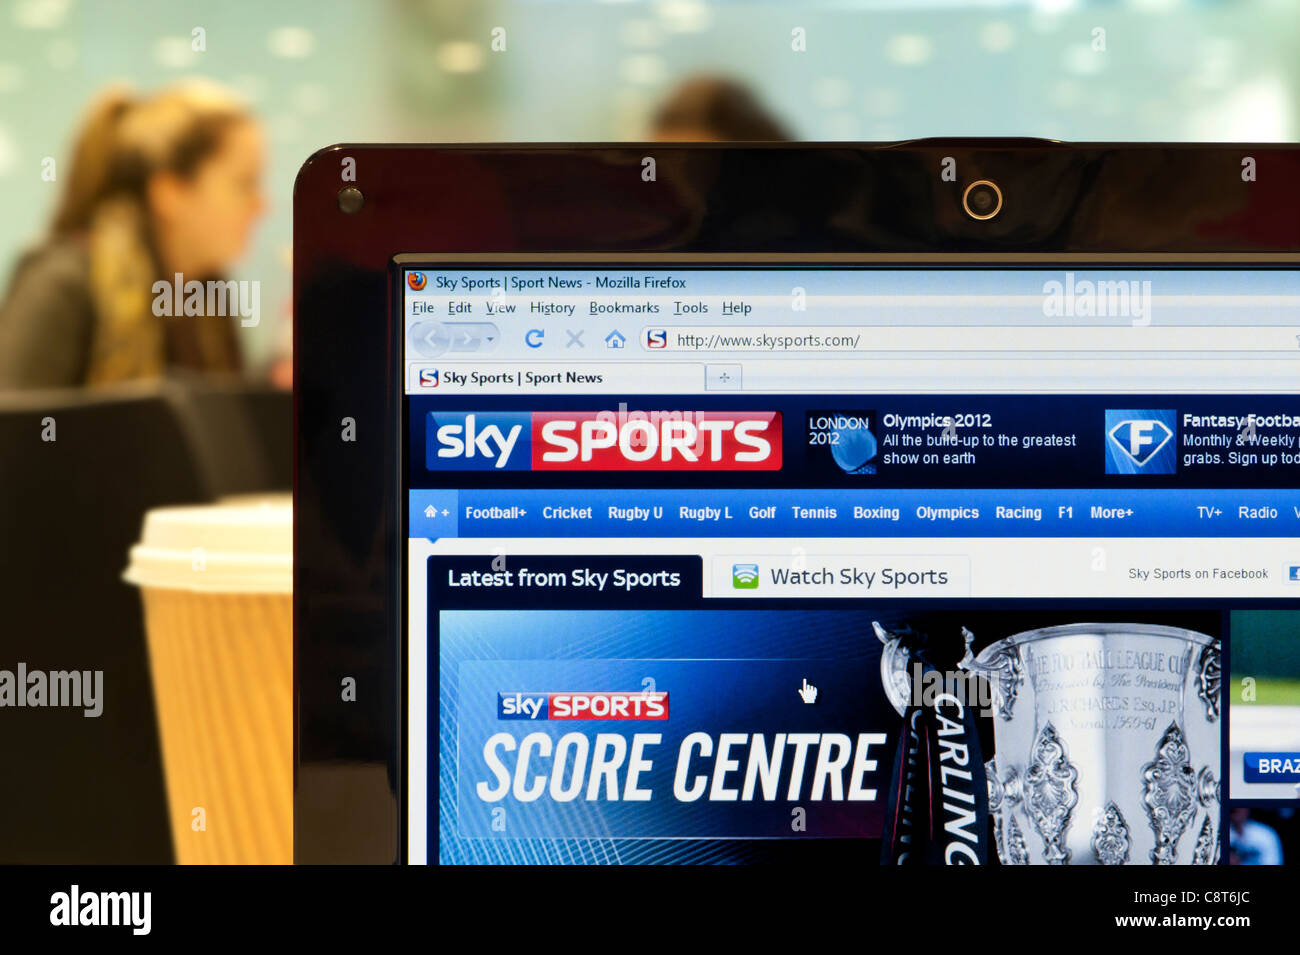 b9d0c012ec4 The Sky Sports website shot in a coffee shop environment (Editorial use  only: print